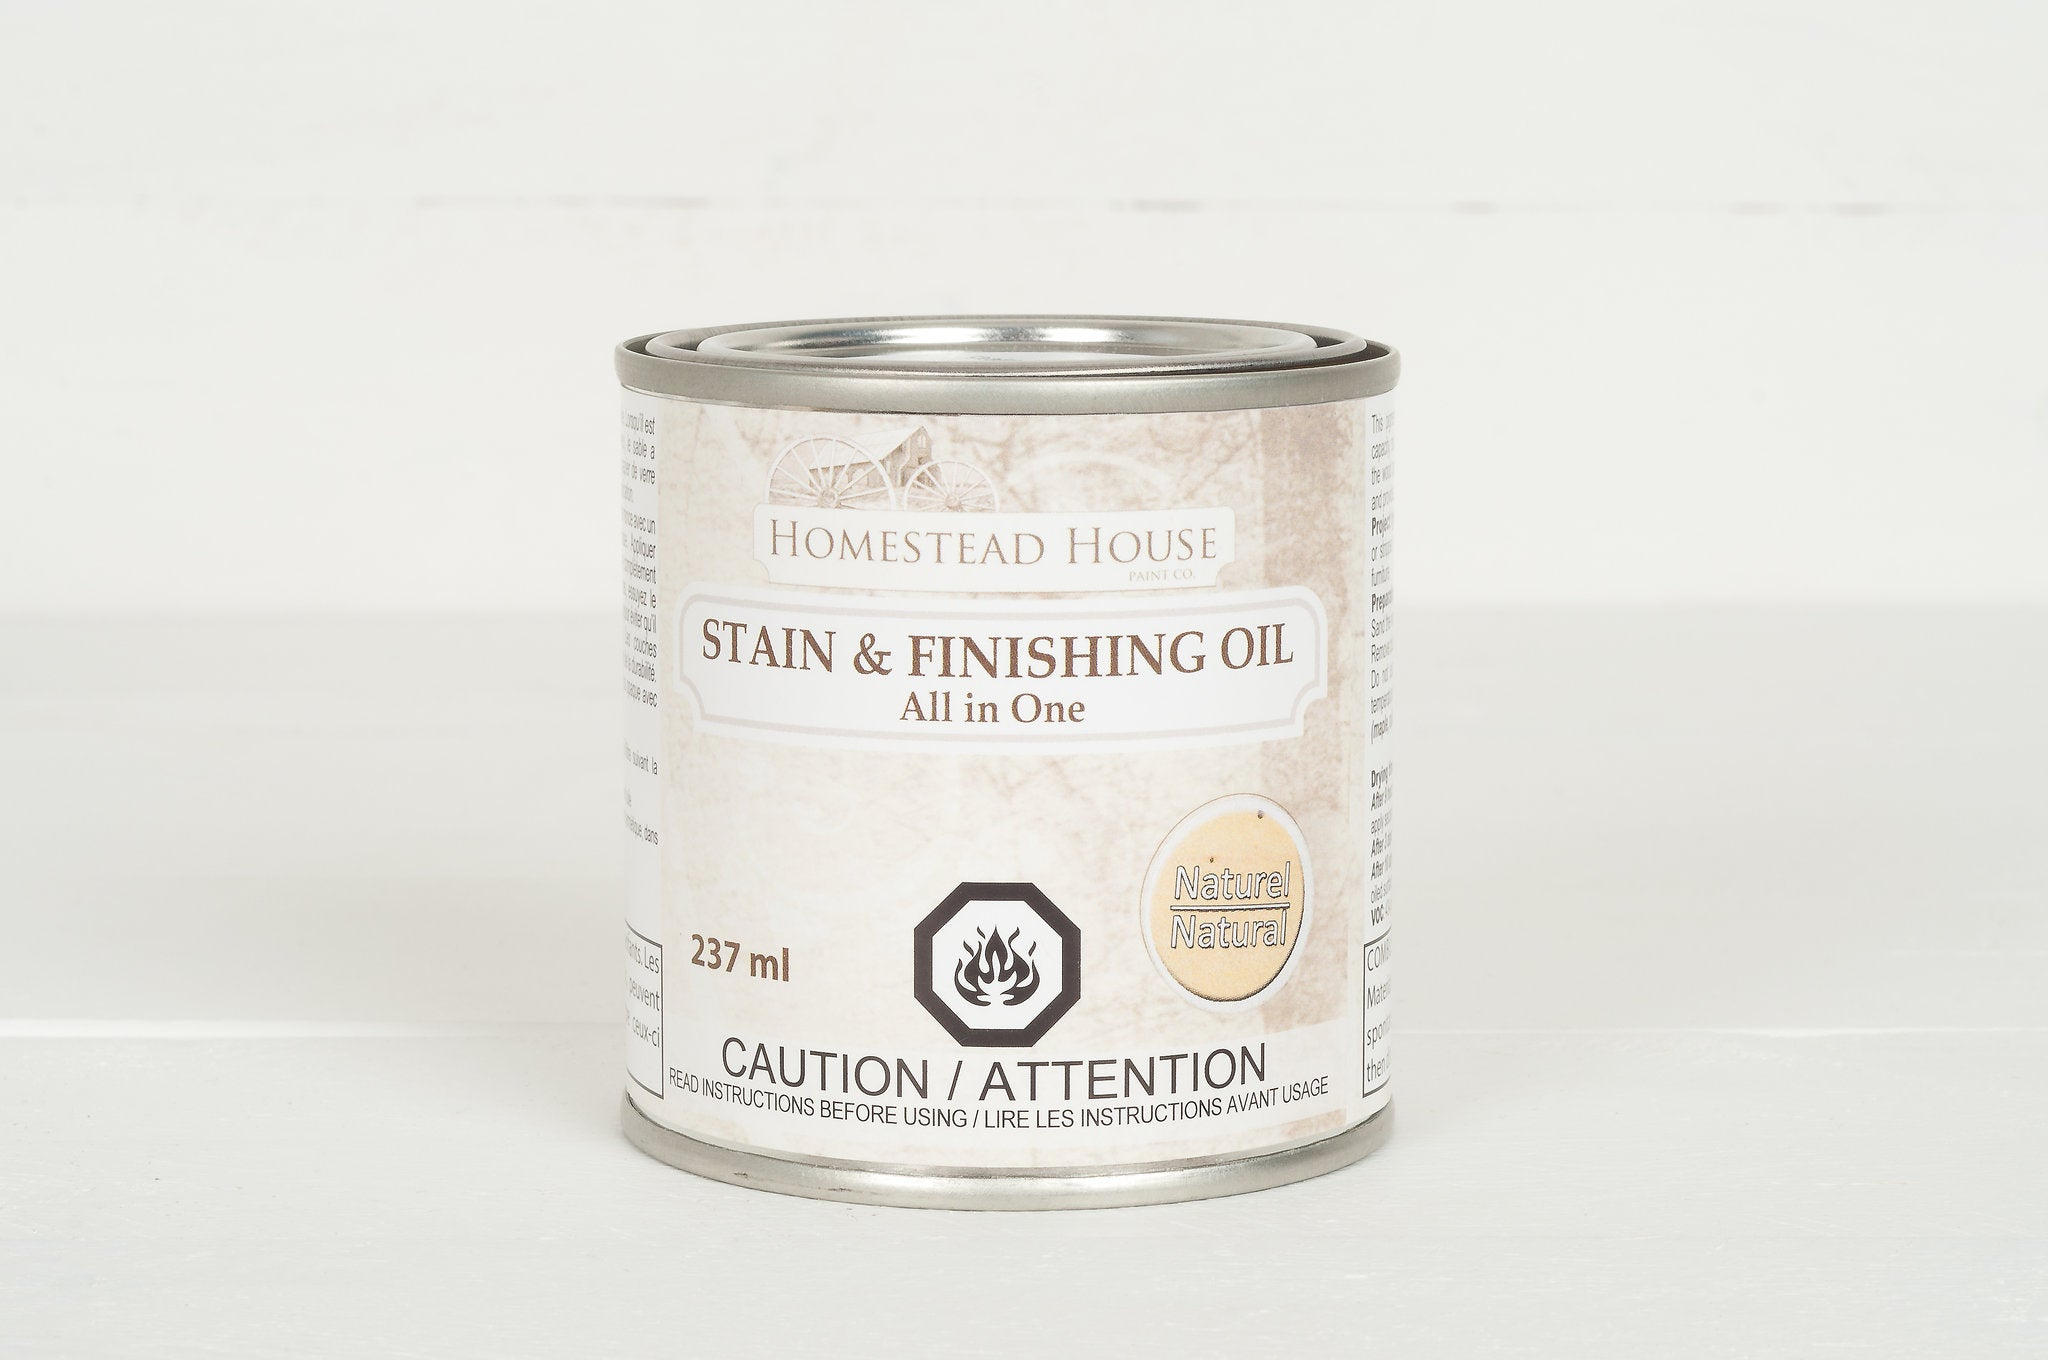 Fusion Mineral Paint Homestead House Stain and Finishing Oil Natural